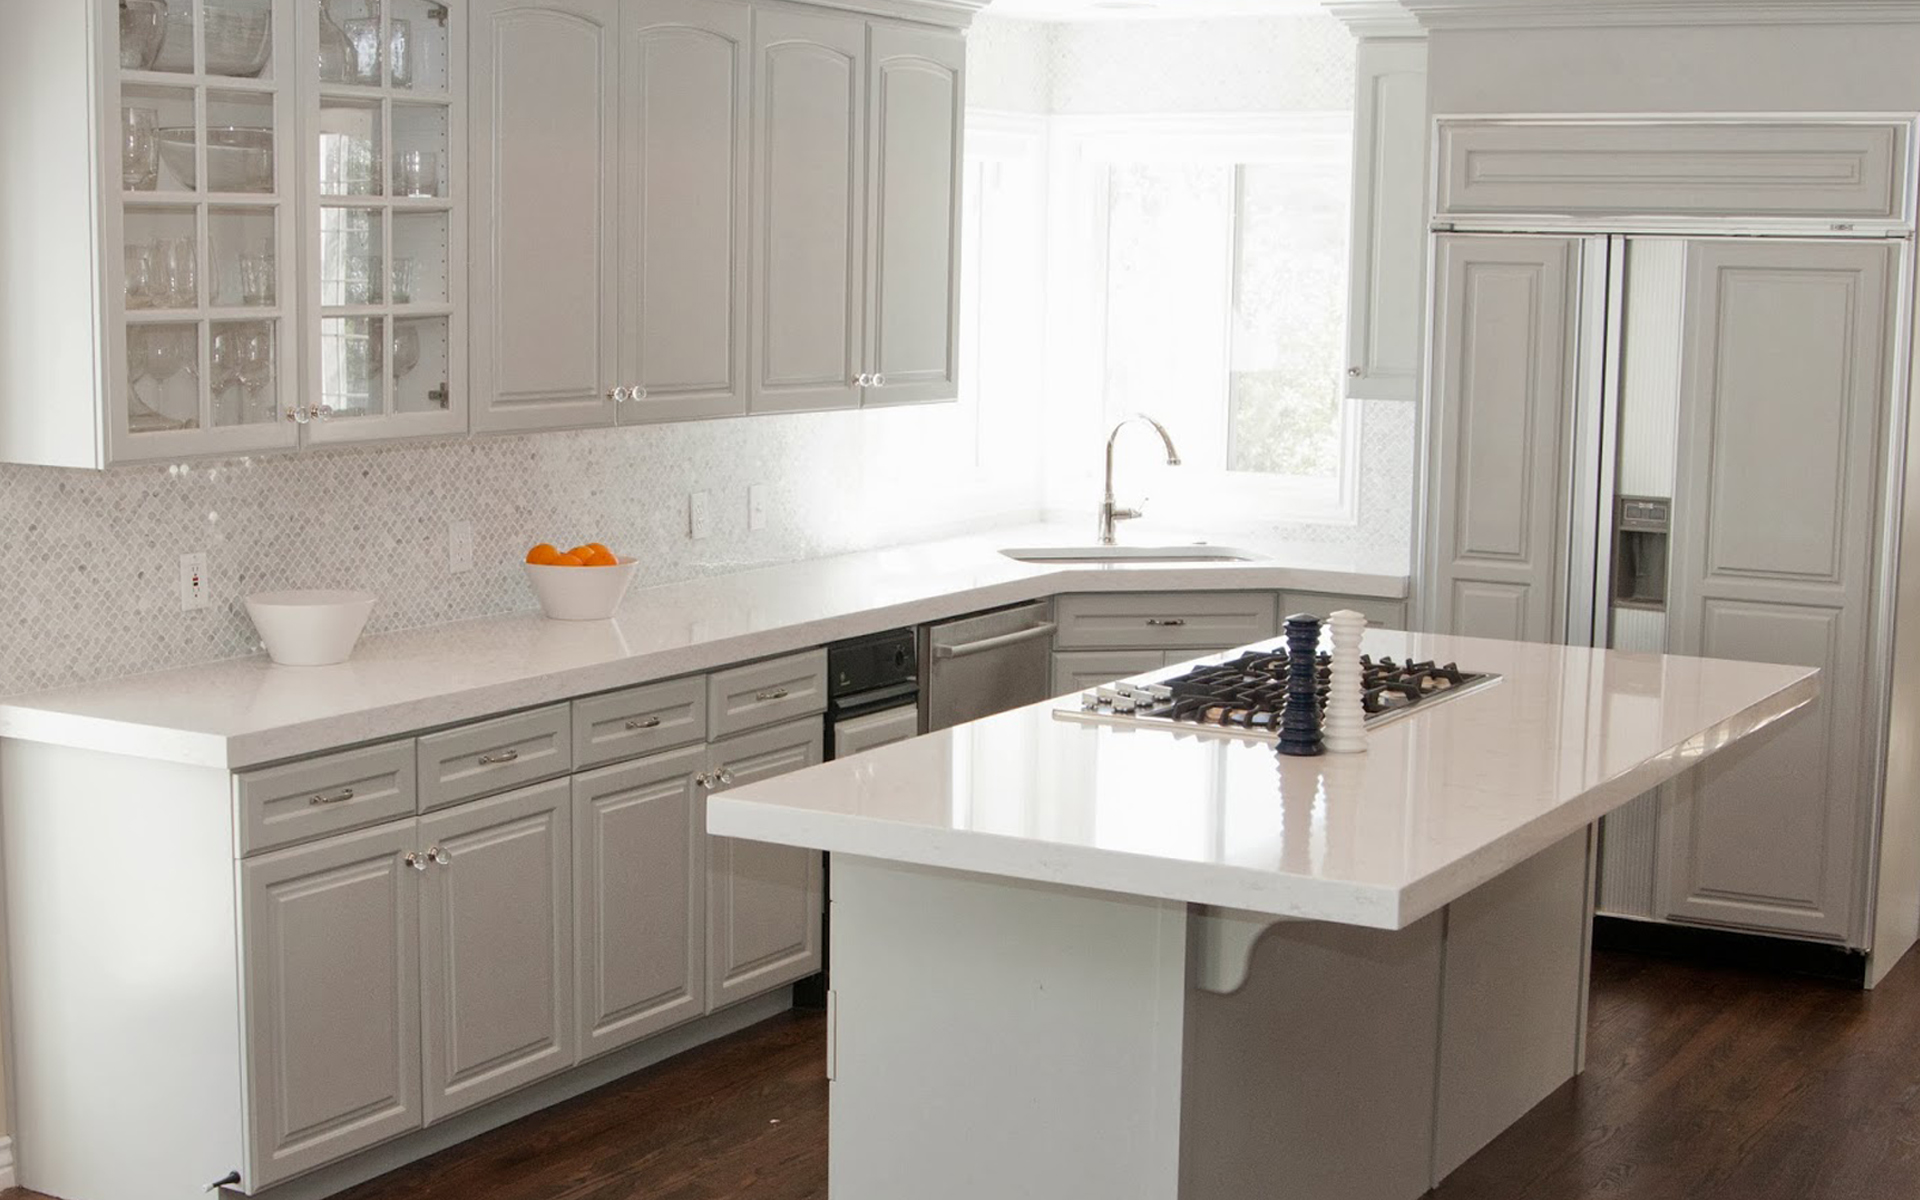 of las interior design cabinets showroom elegant kitchen remodel vegas italian remodeling